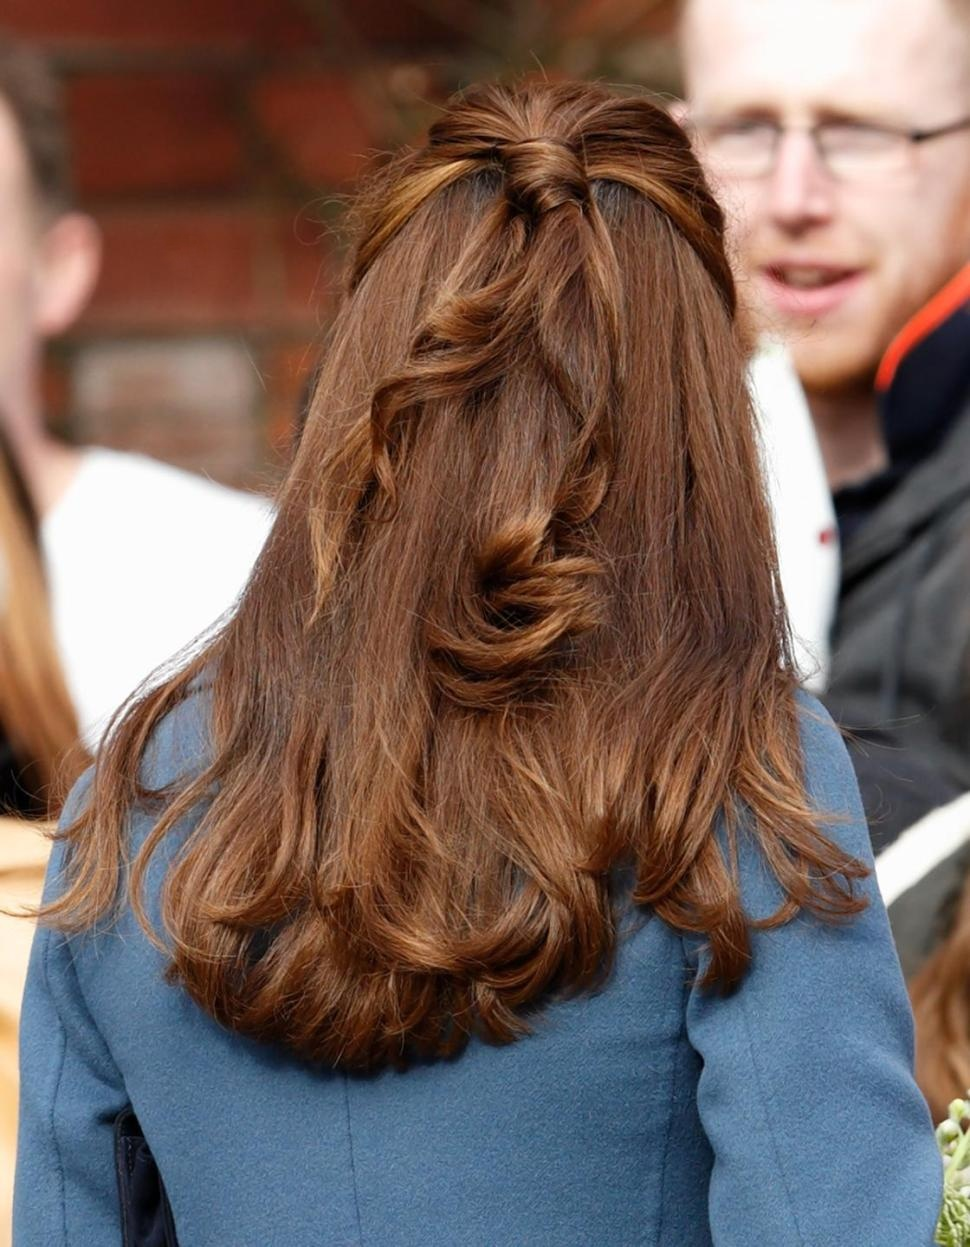 OH KATE MIDDLETON, ARE YOU REALLY SHOWING GREY ROOTS AT 33